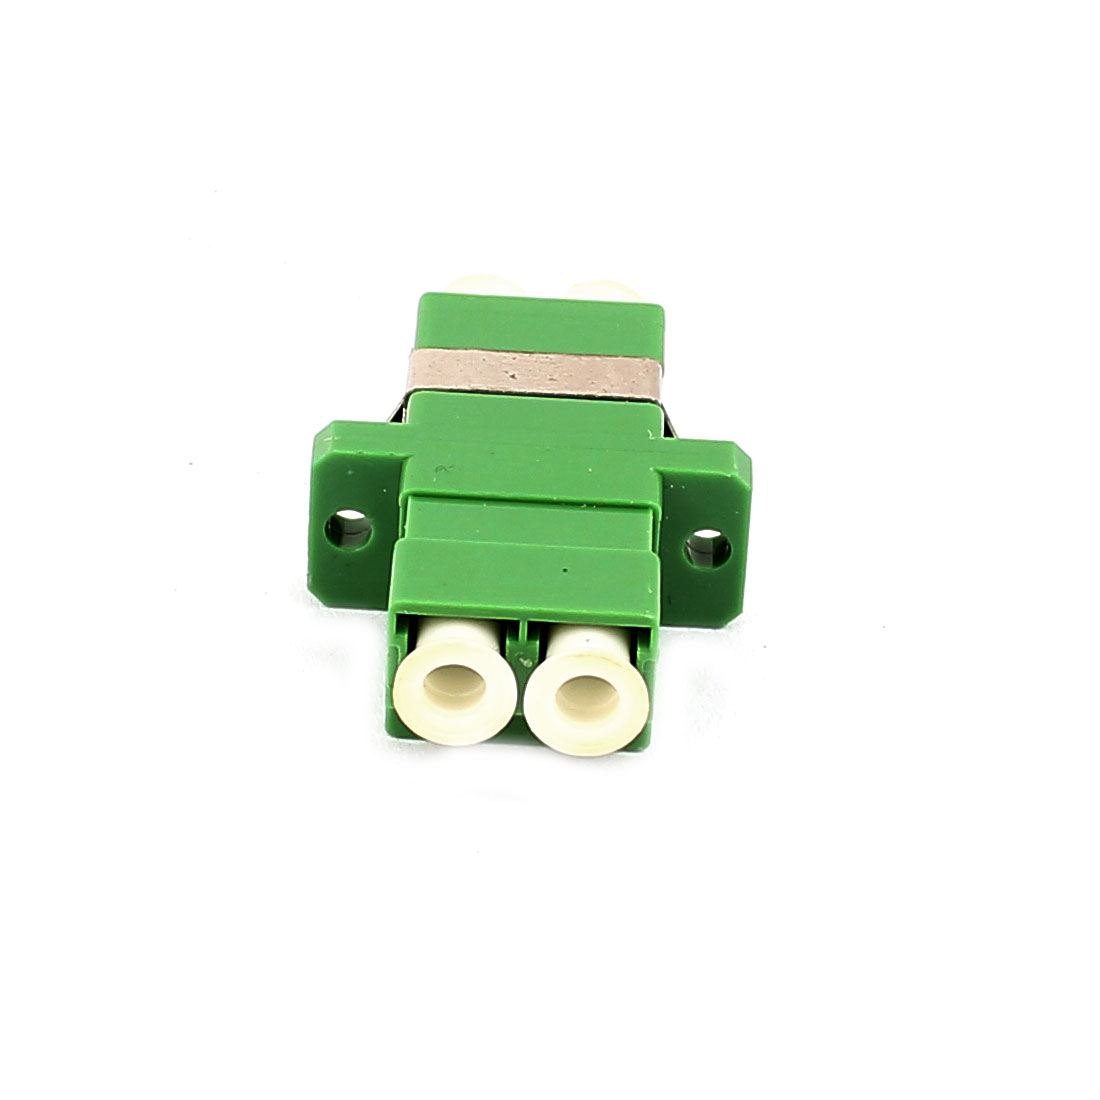 FTTH LC/APC SM Duplex Fibre Optical Duplexer Bare Fiber Optic Adapter